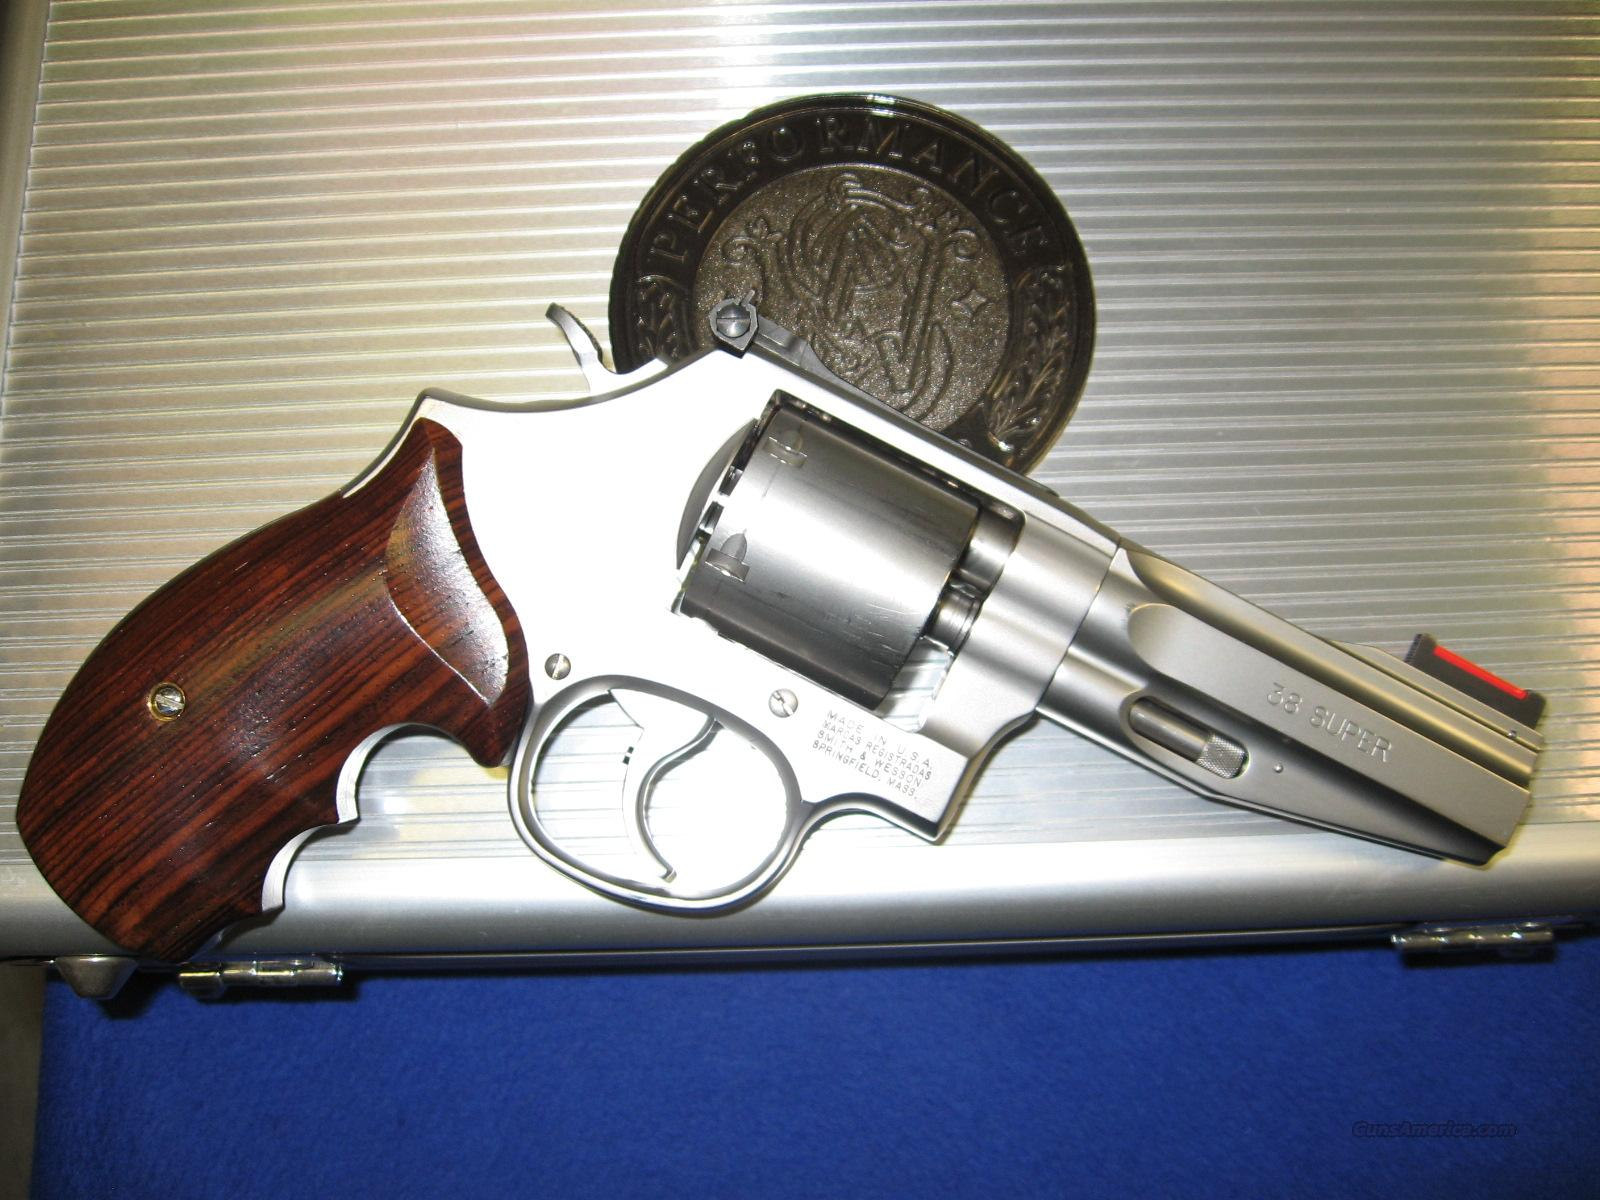 S&W Performance Center 686-7 .38 Super  Guns > Pistols > Smith & Wesson Revolvers > Performance Center